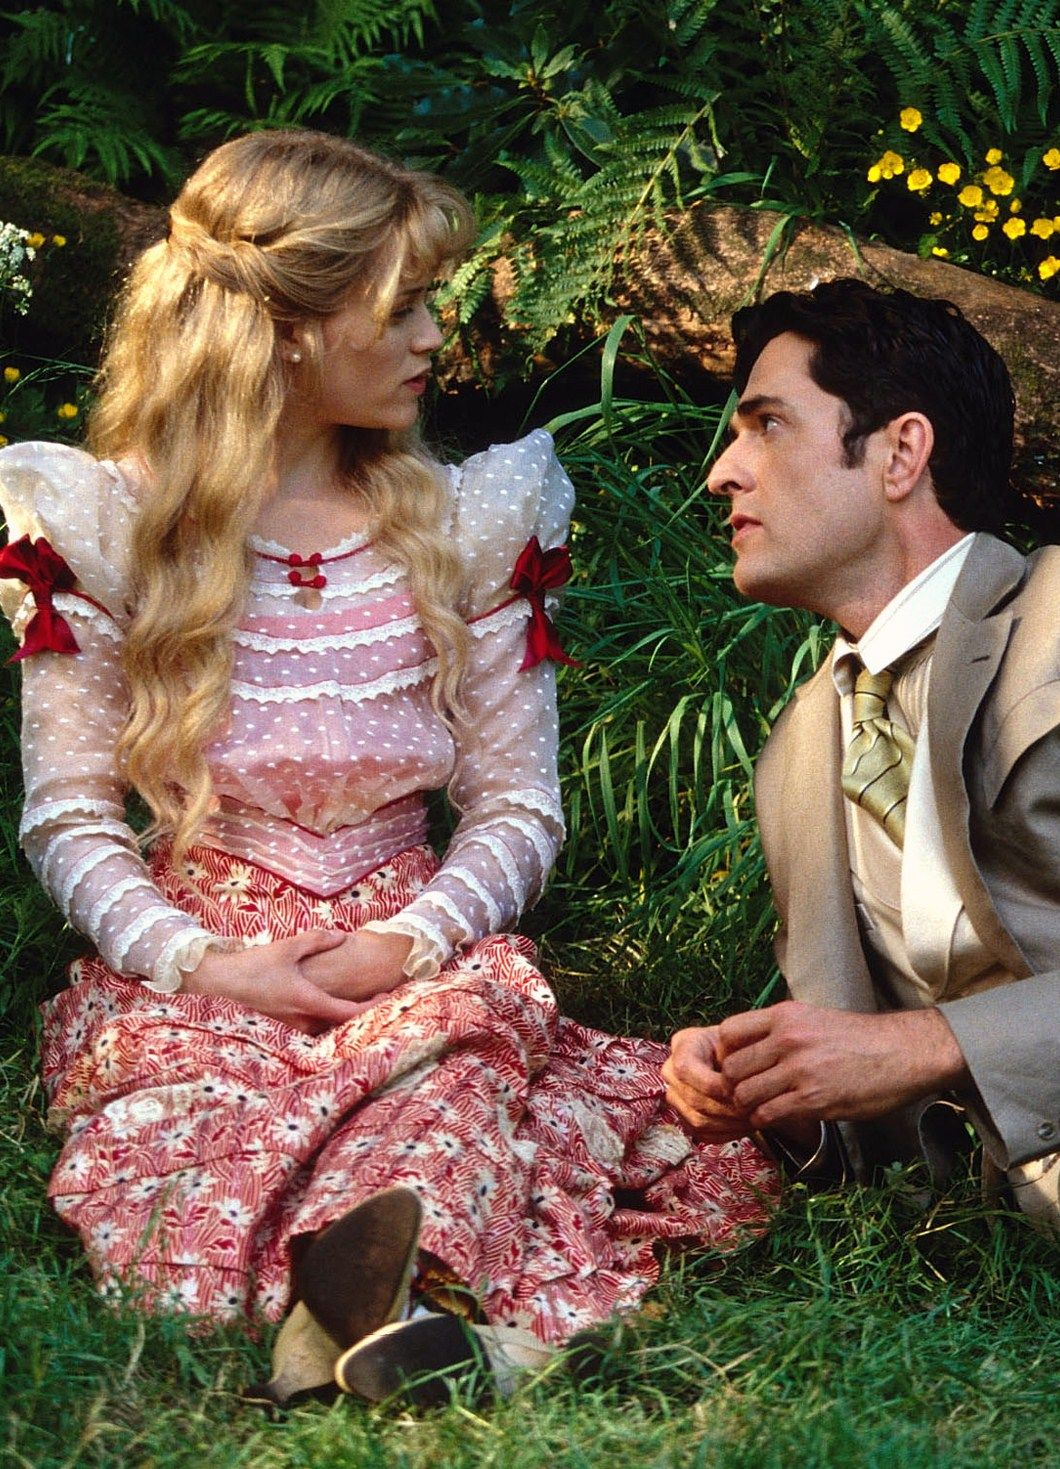 cecily cardew reese erspoon in the importance of being reese erspoon and rupert everett in the importance of being earnest